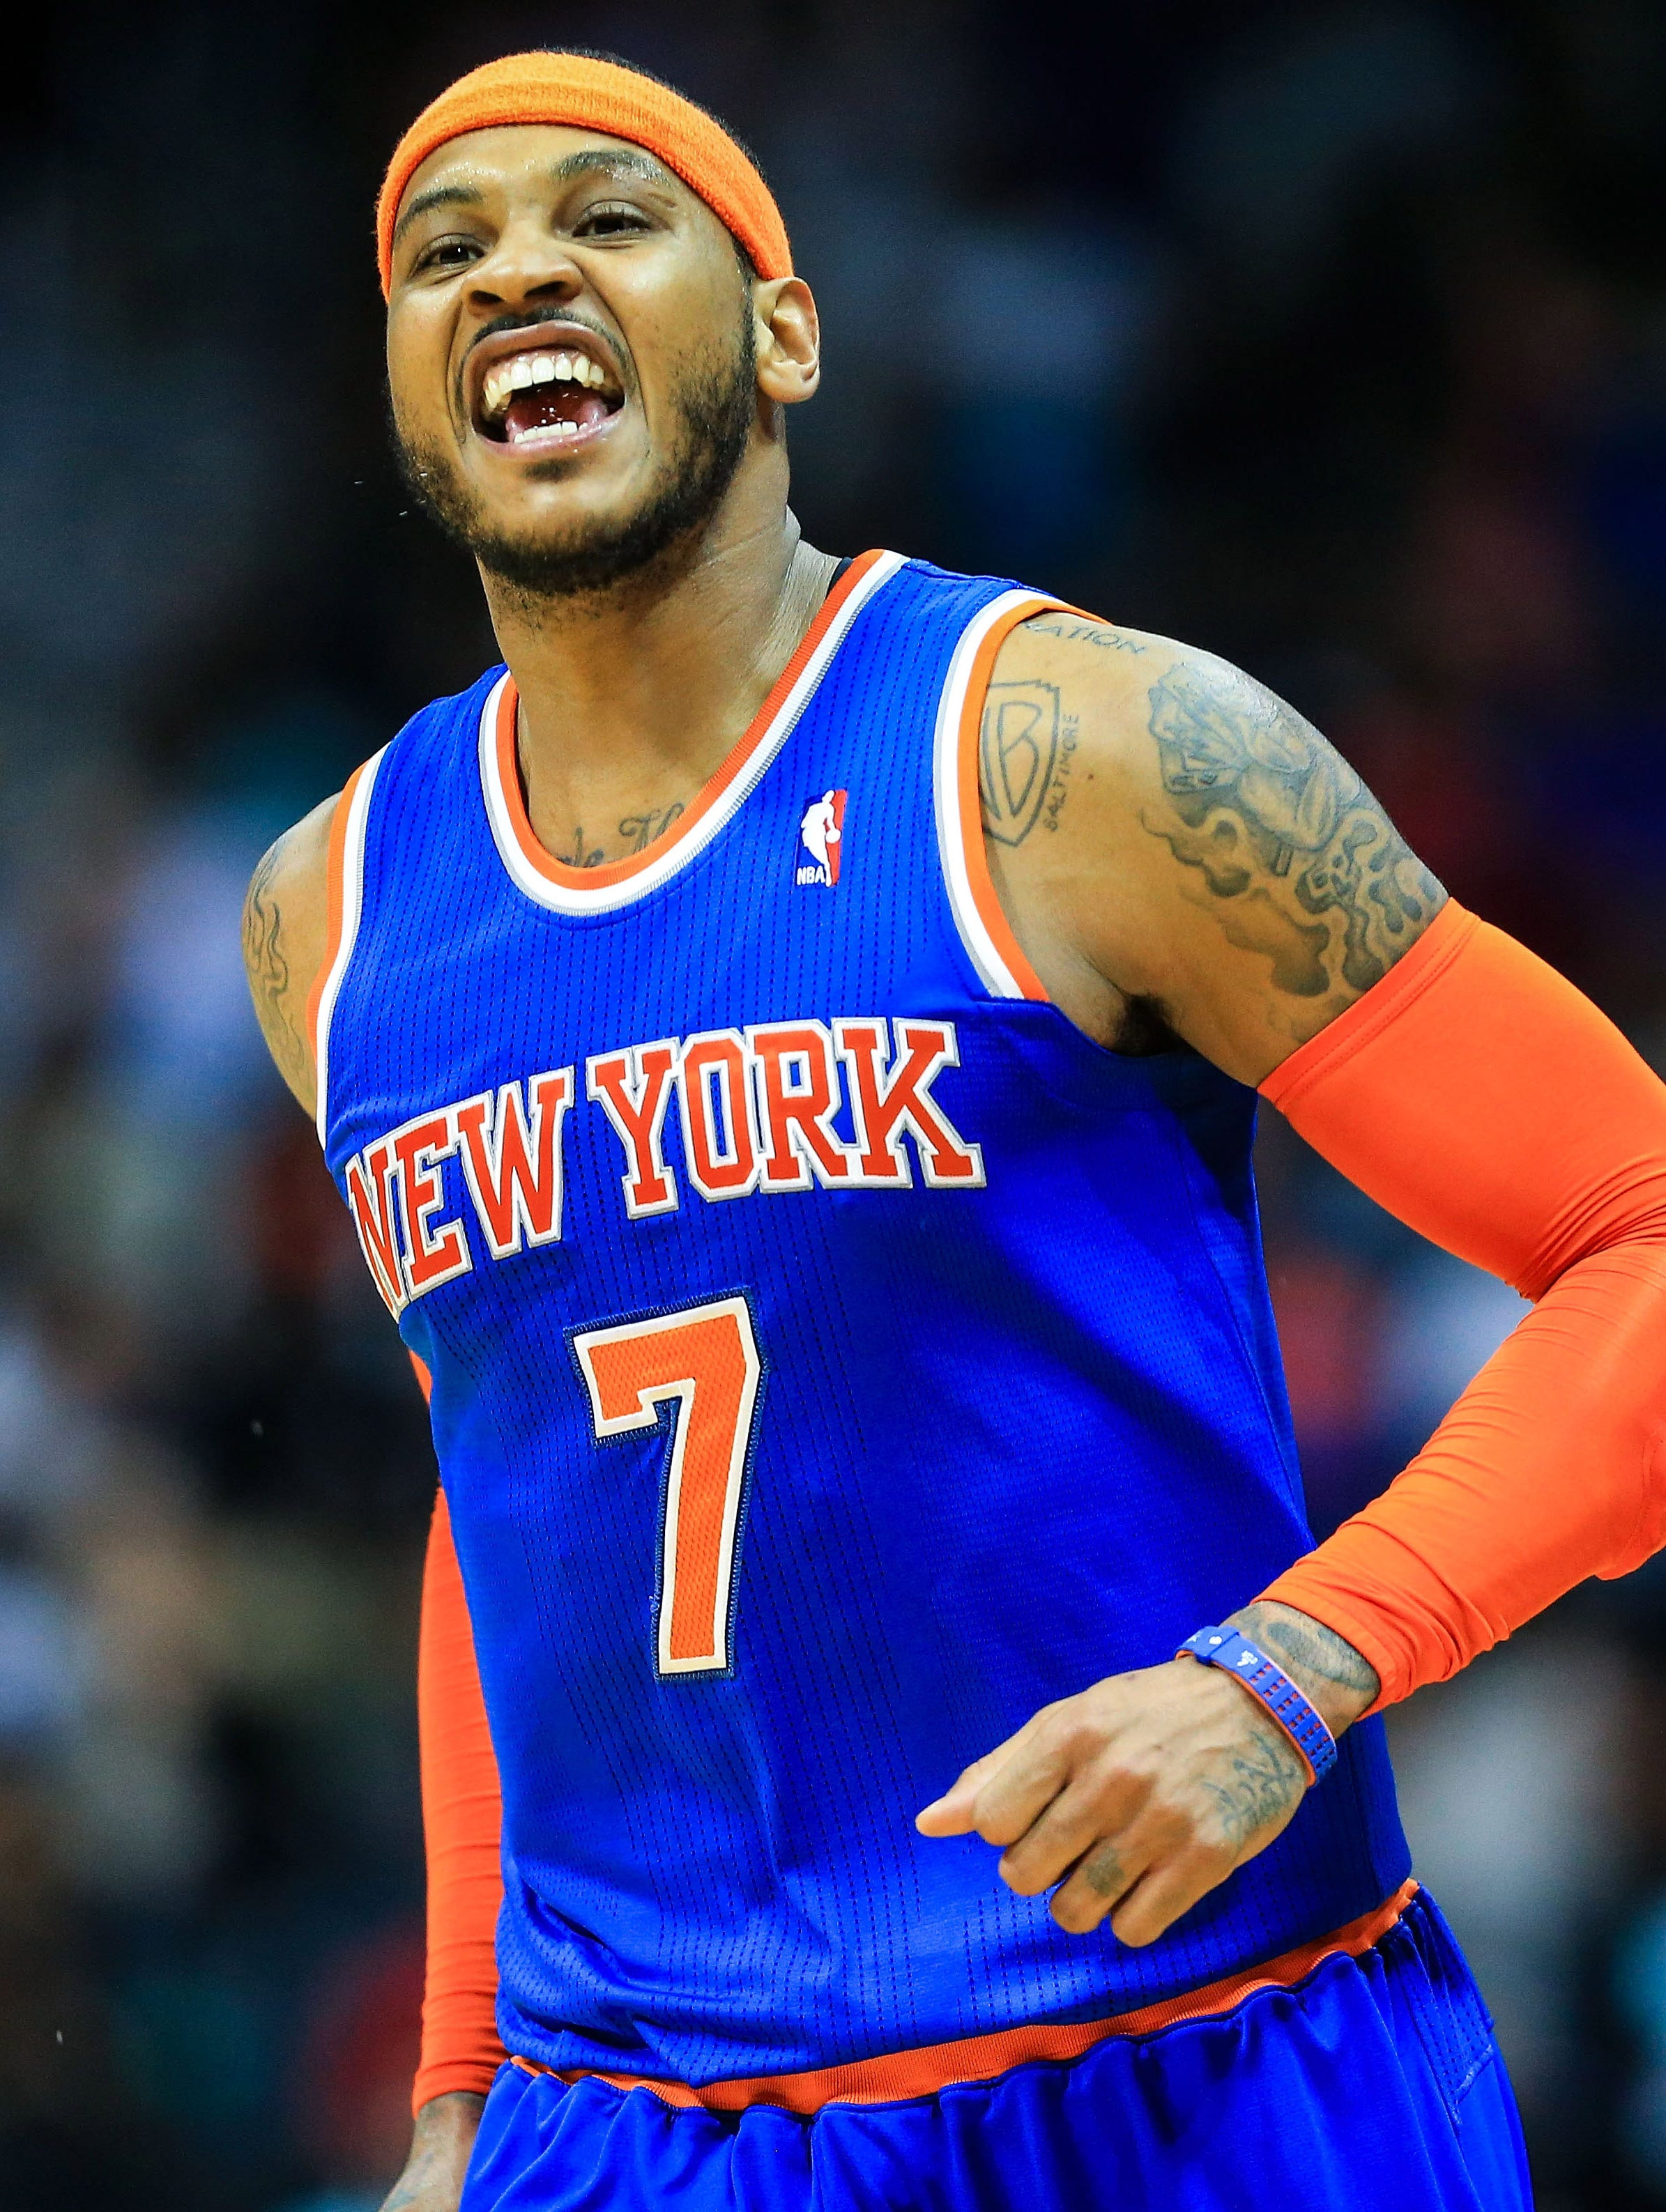 Carmelo Anthony to stay with Knicks on 5-year contract